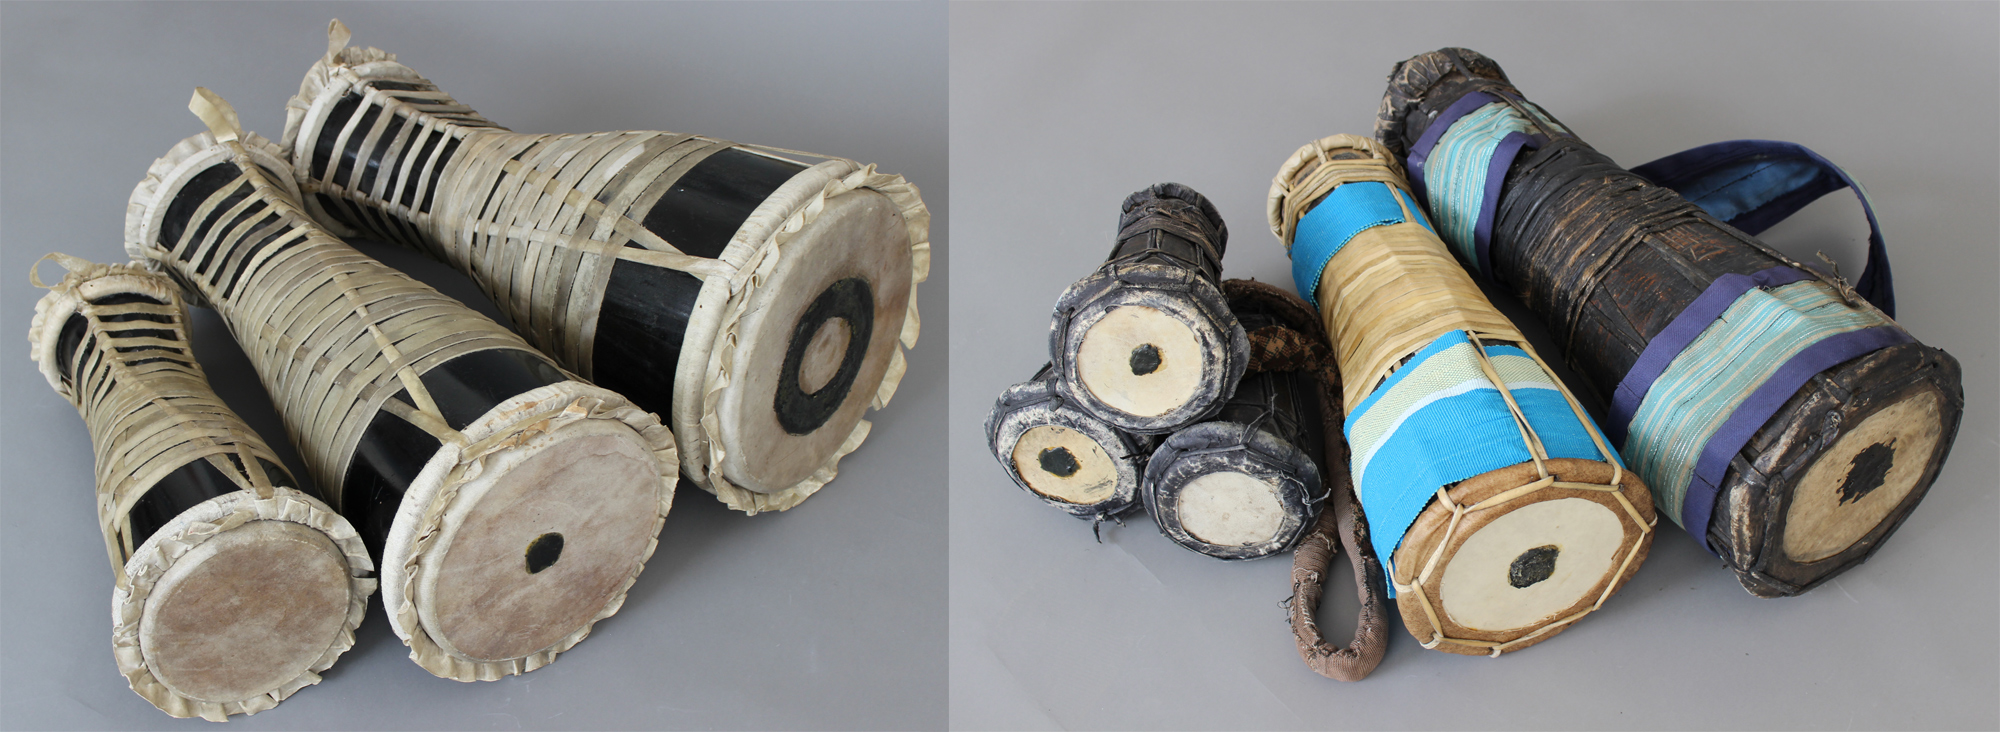 Left a Lukumí batá drum set from Havana, right a Yorùbá bàtá set from Ìbàdàn (the omele is not colored, I had to renew the skin, the omele meta as a set of three would not be played in an Òrìṣà context). There are other types of bàtá drums in Yorùbáland and Cuba, too. Both sets are original bàtá and I do not think of one being the offspring of the other! Watch out for the upcoming story! © Orisha Image